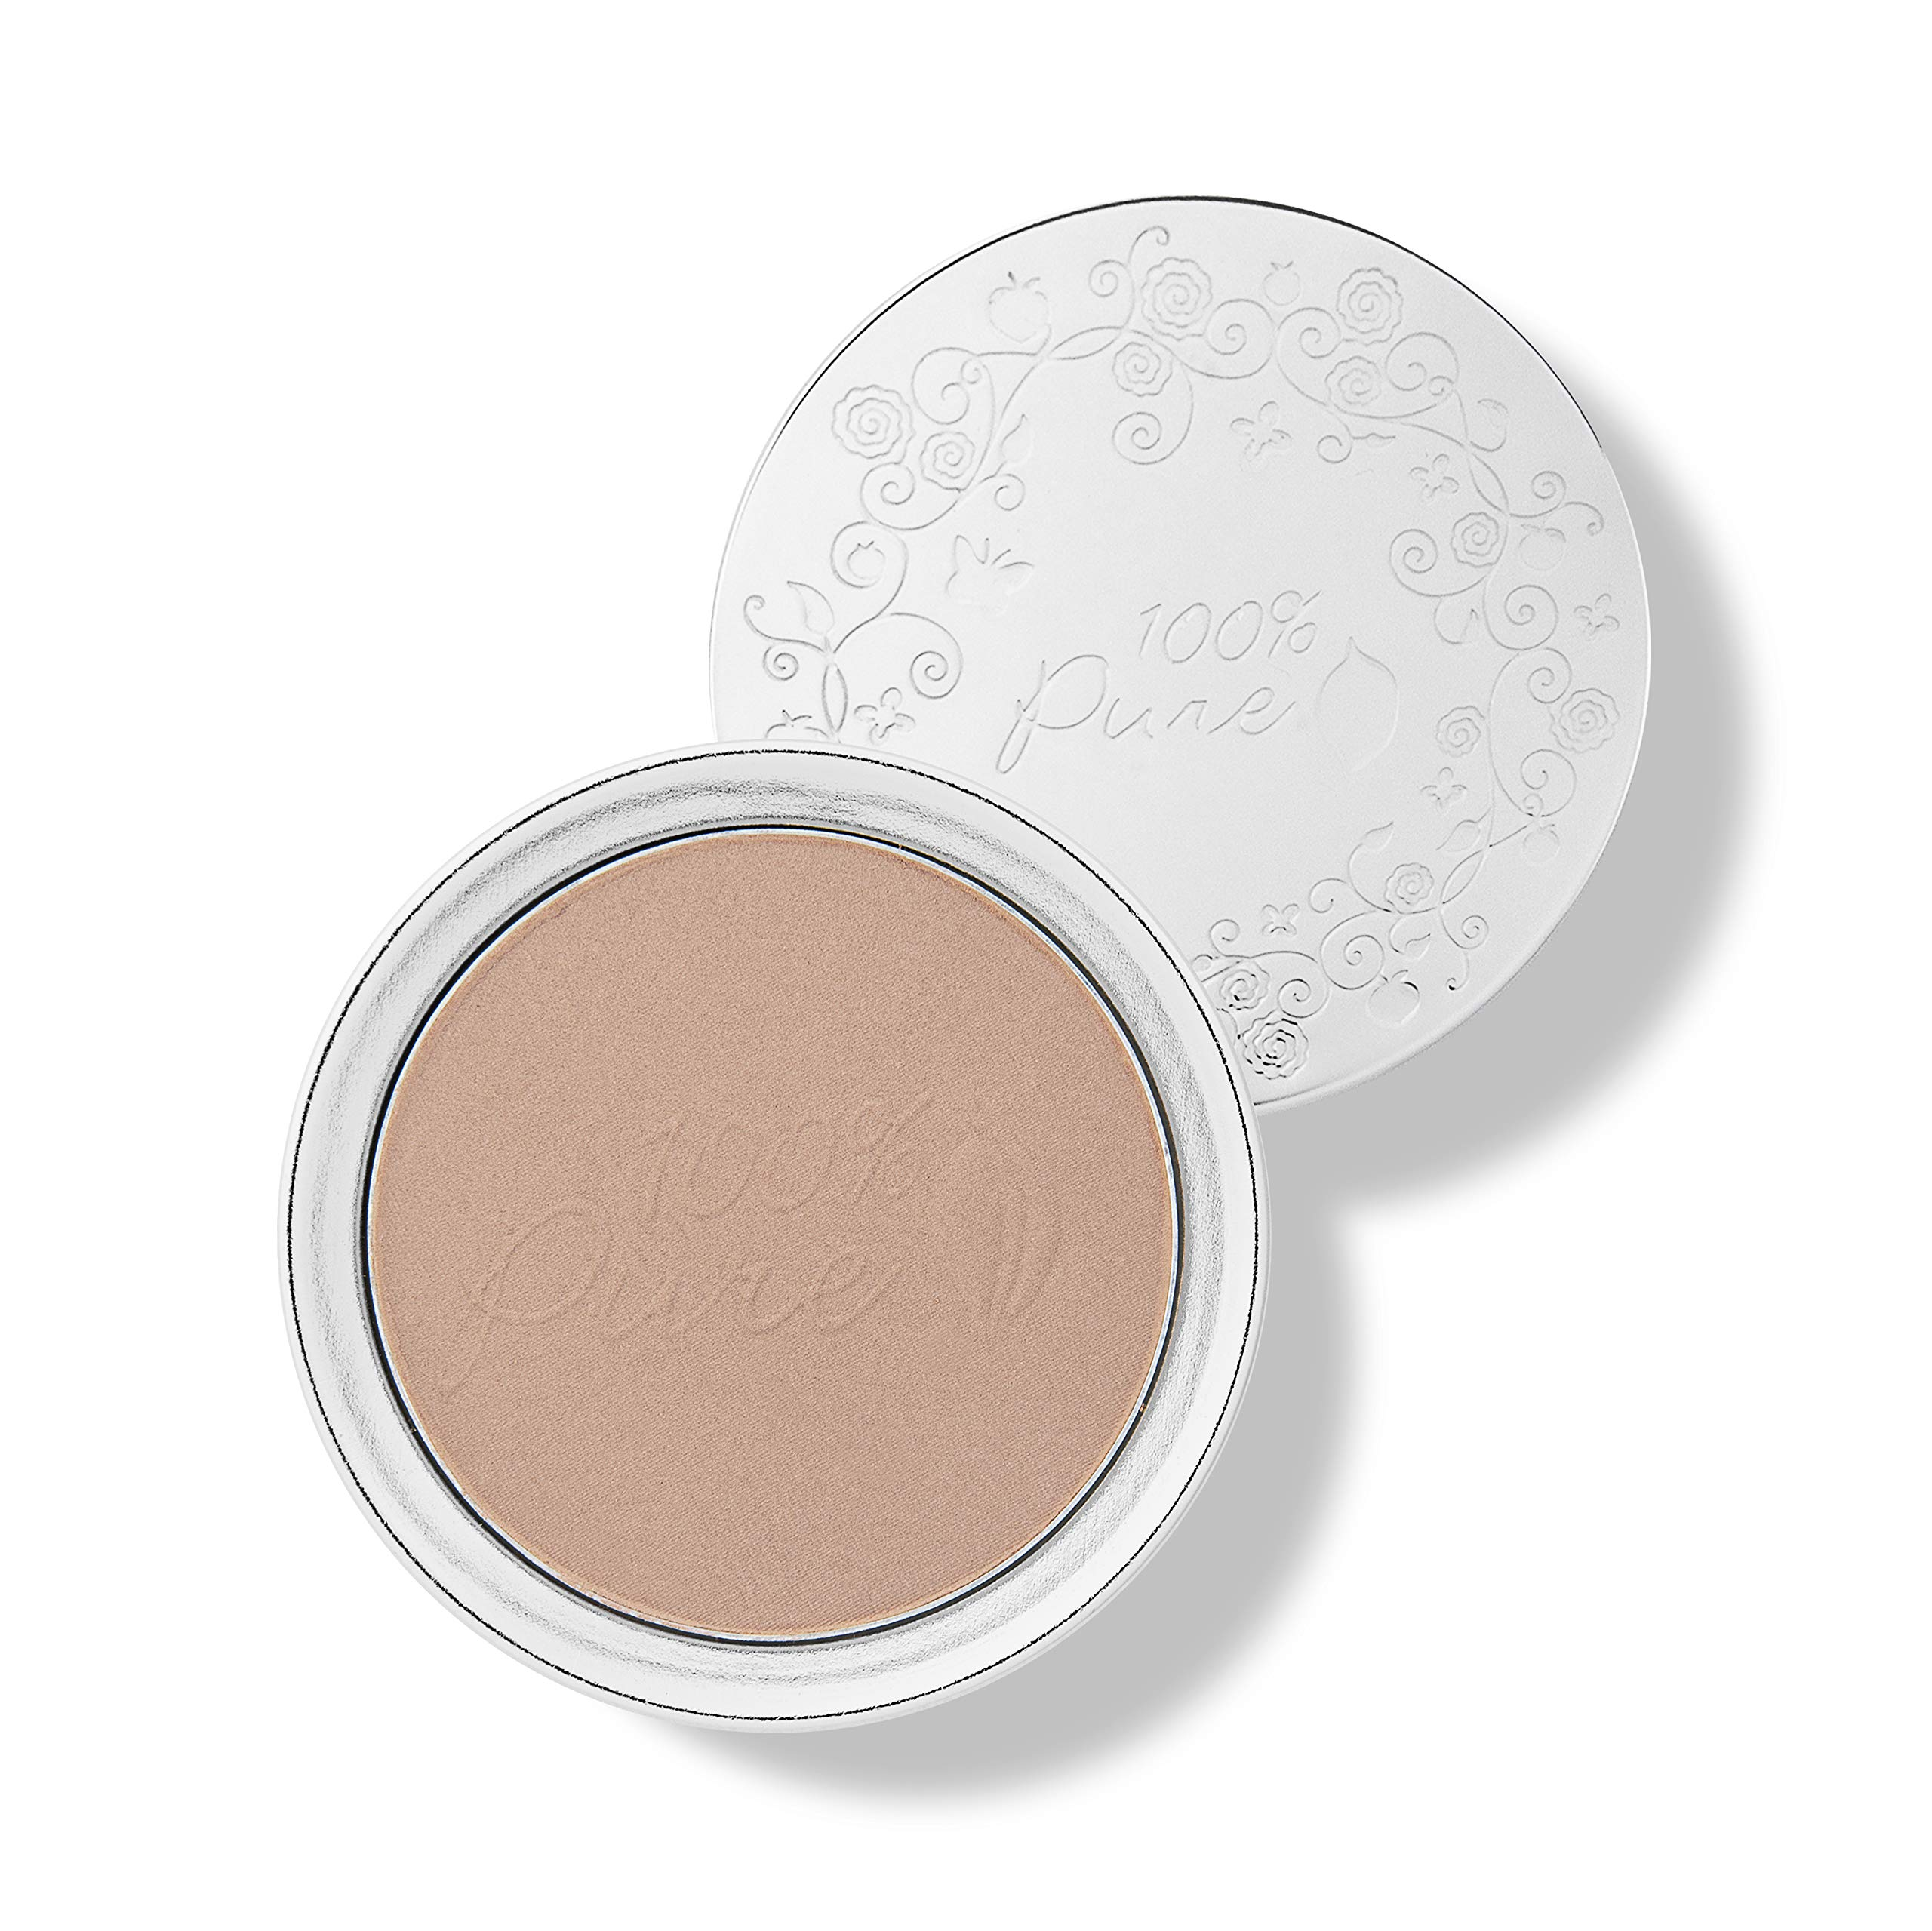 100 Pure Powder Foundation Fruit Pigmented Toffee Matte Finish Absorbs Oil Anti Aging Helps Fight Acne Natural Vegan Makeup Tan Shade W Neutral Undertones 0 32 Oz